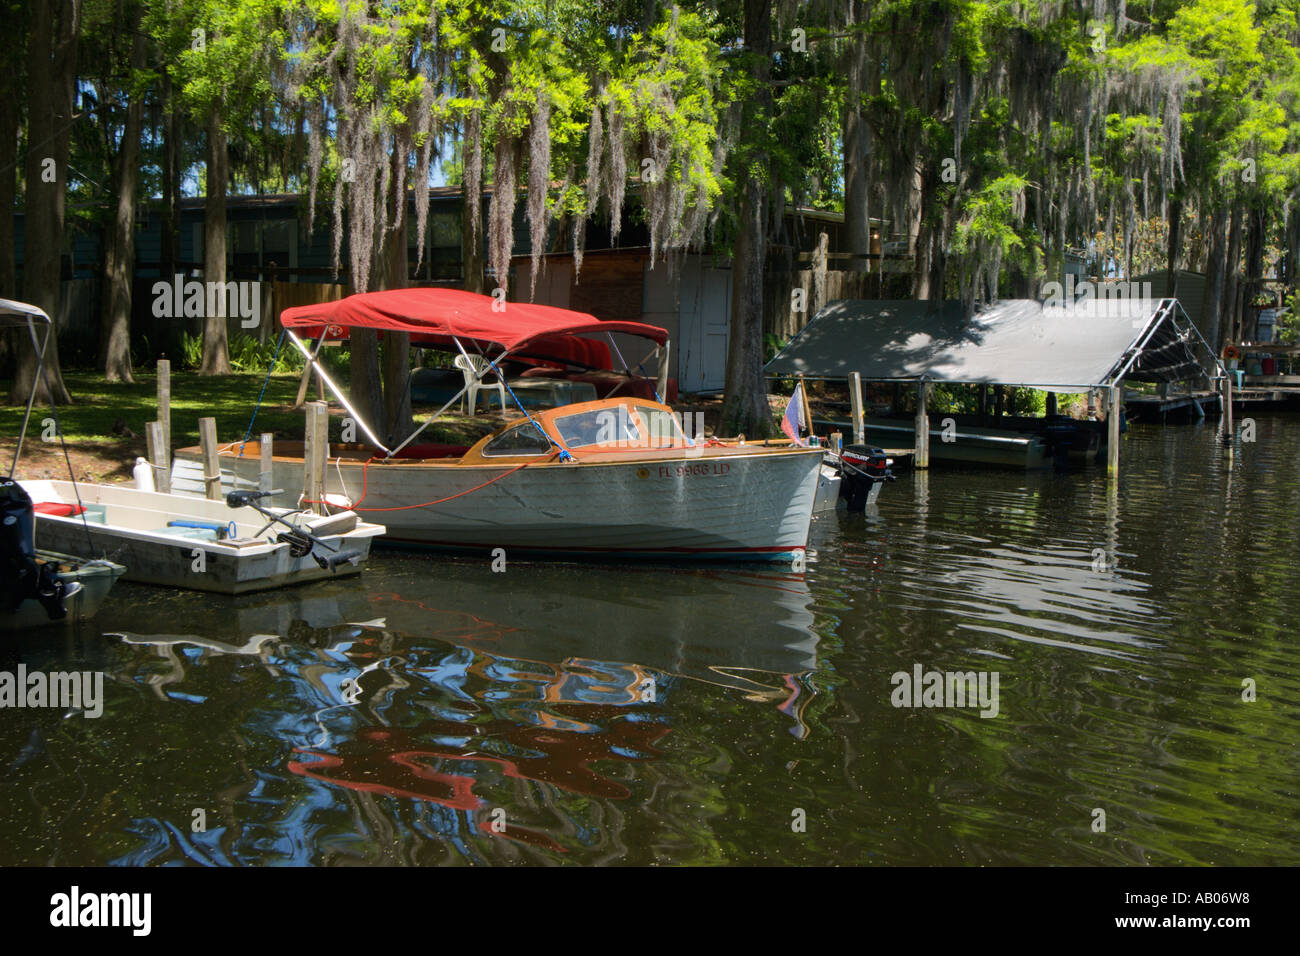 Wooden Boat With Bright Red Canopy at Lake Rousseau Florida & Wooden Boat With Bright Red Canopy at Lake Rousseau Florida Stock ...